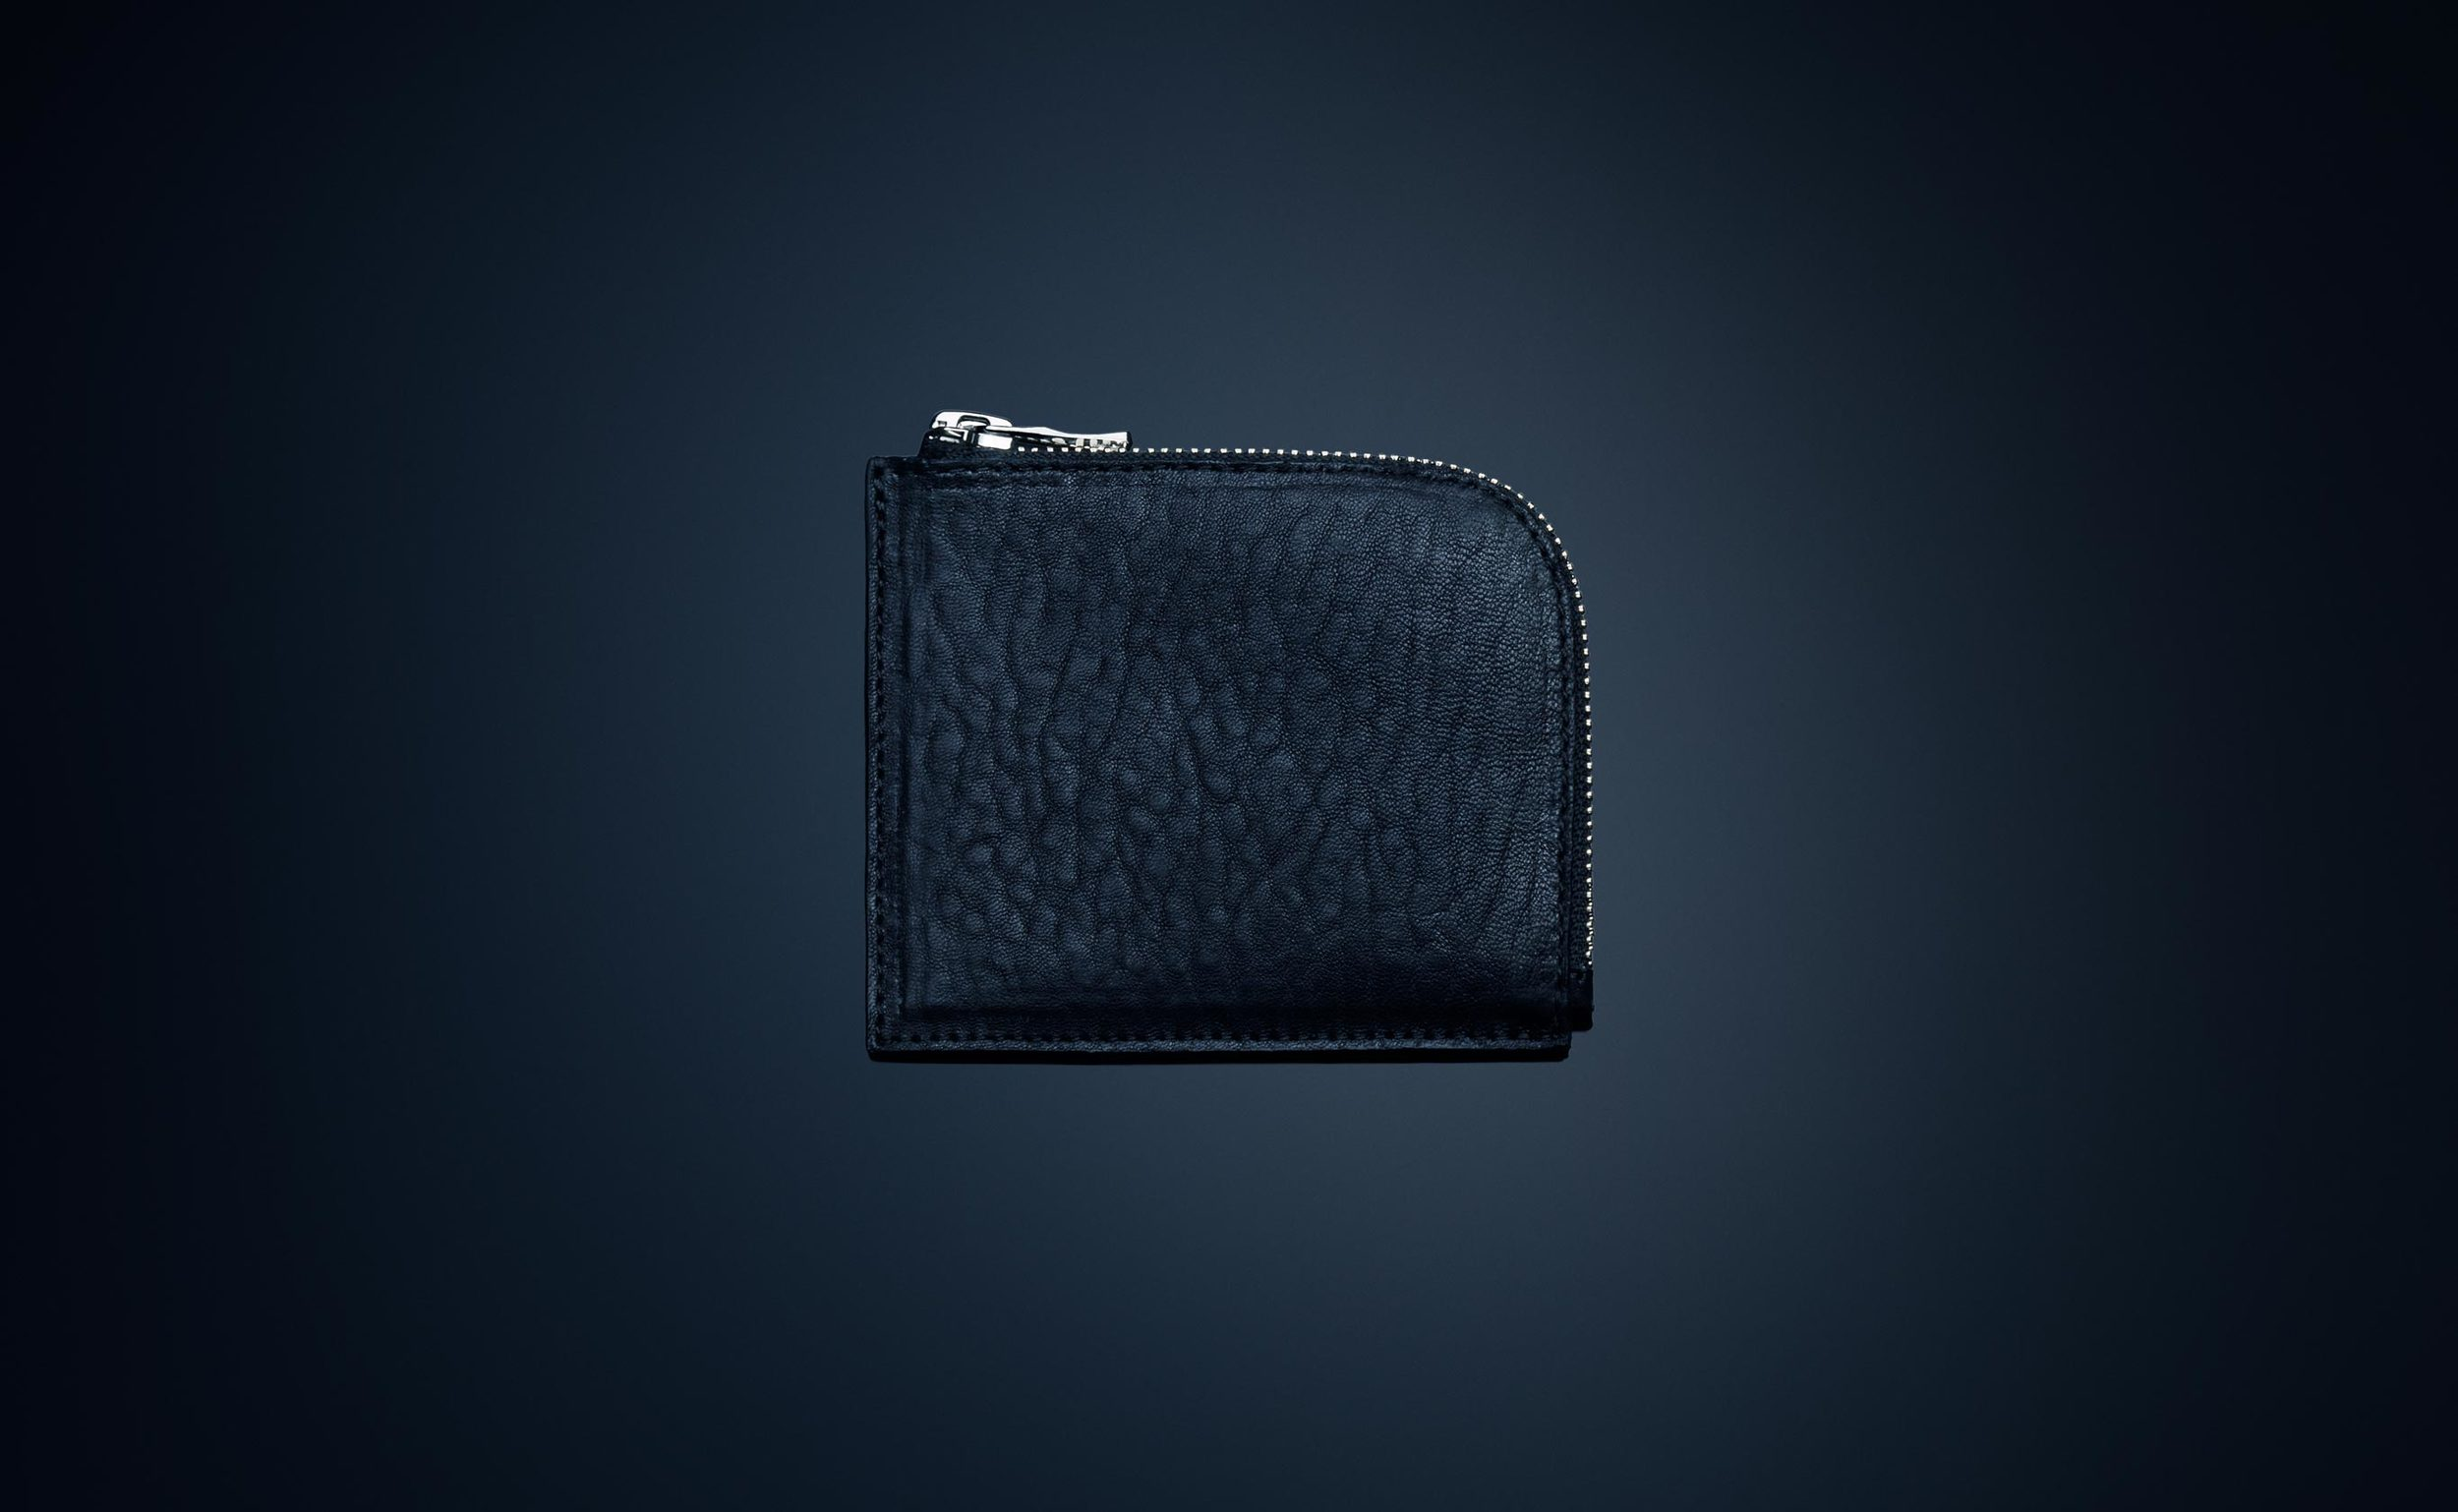 Grained Leather Wallet - $34.99